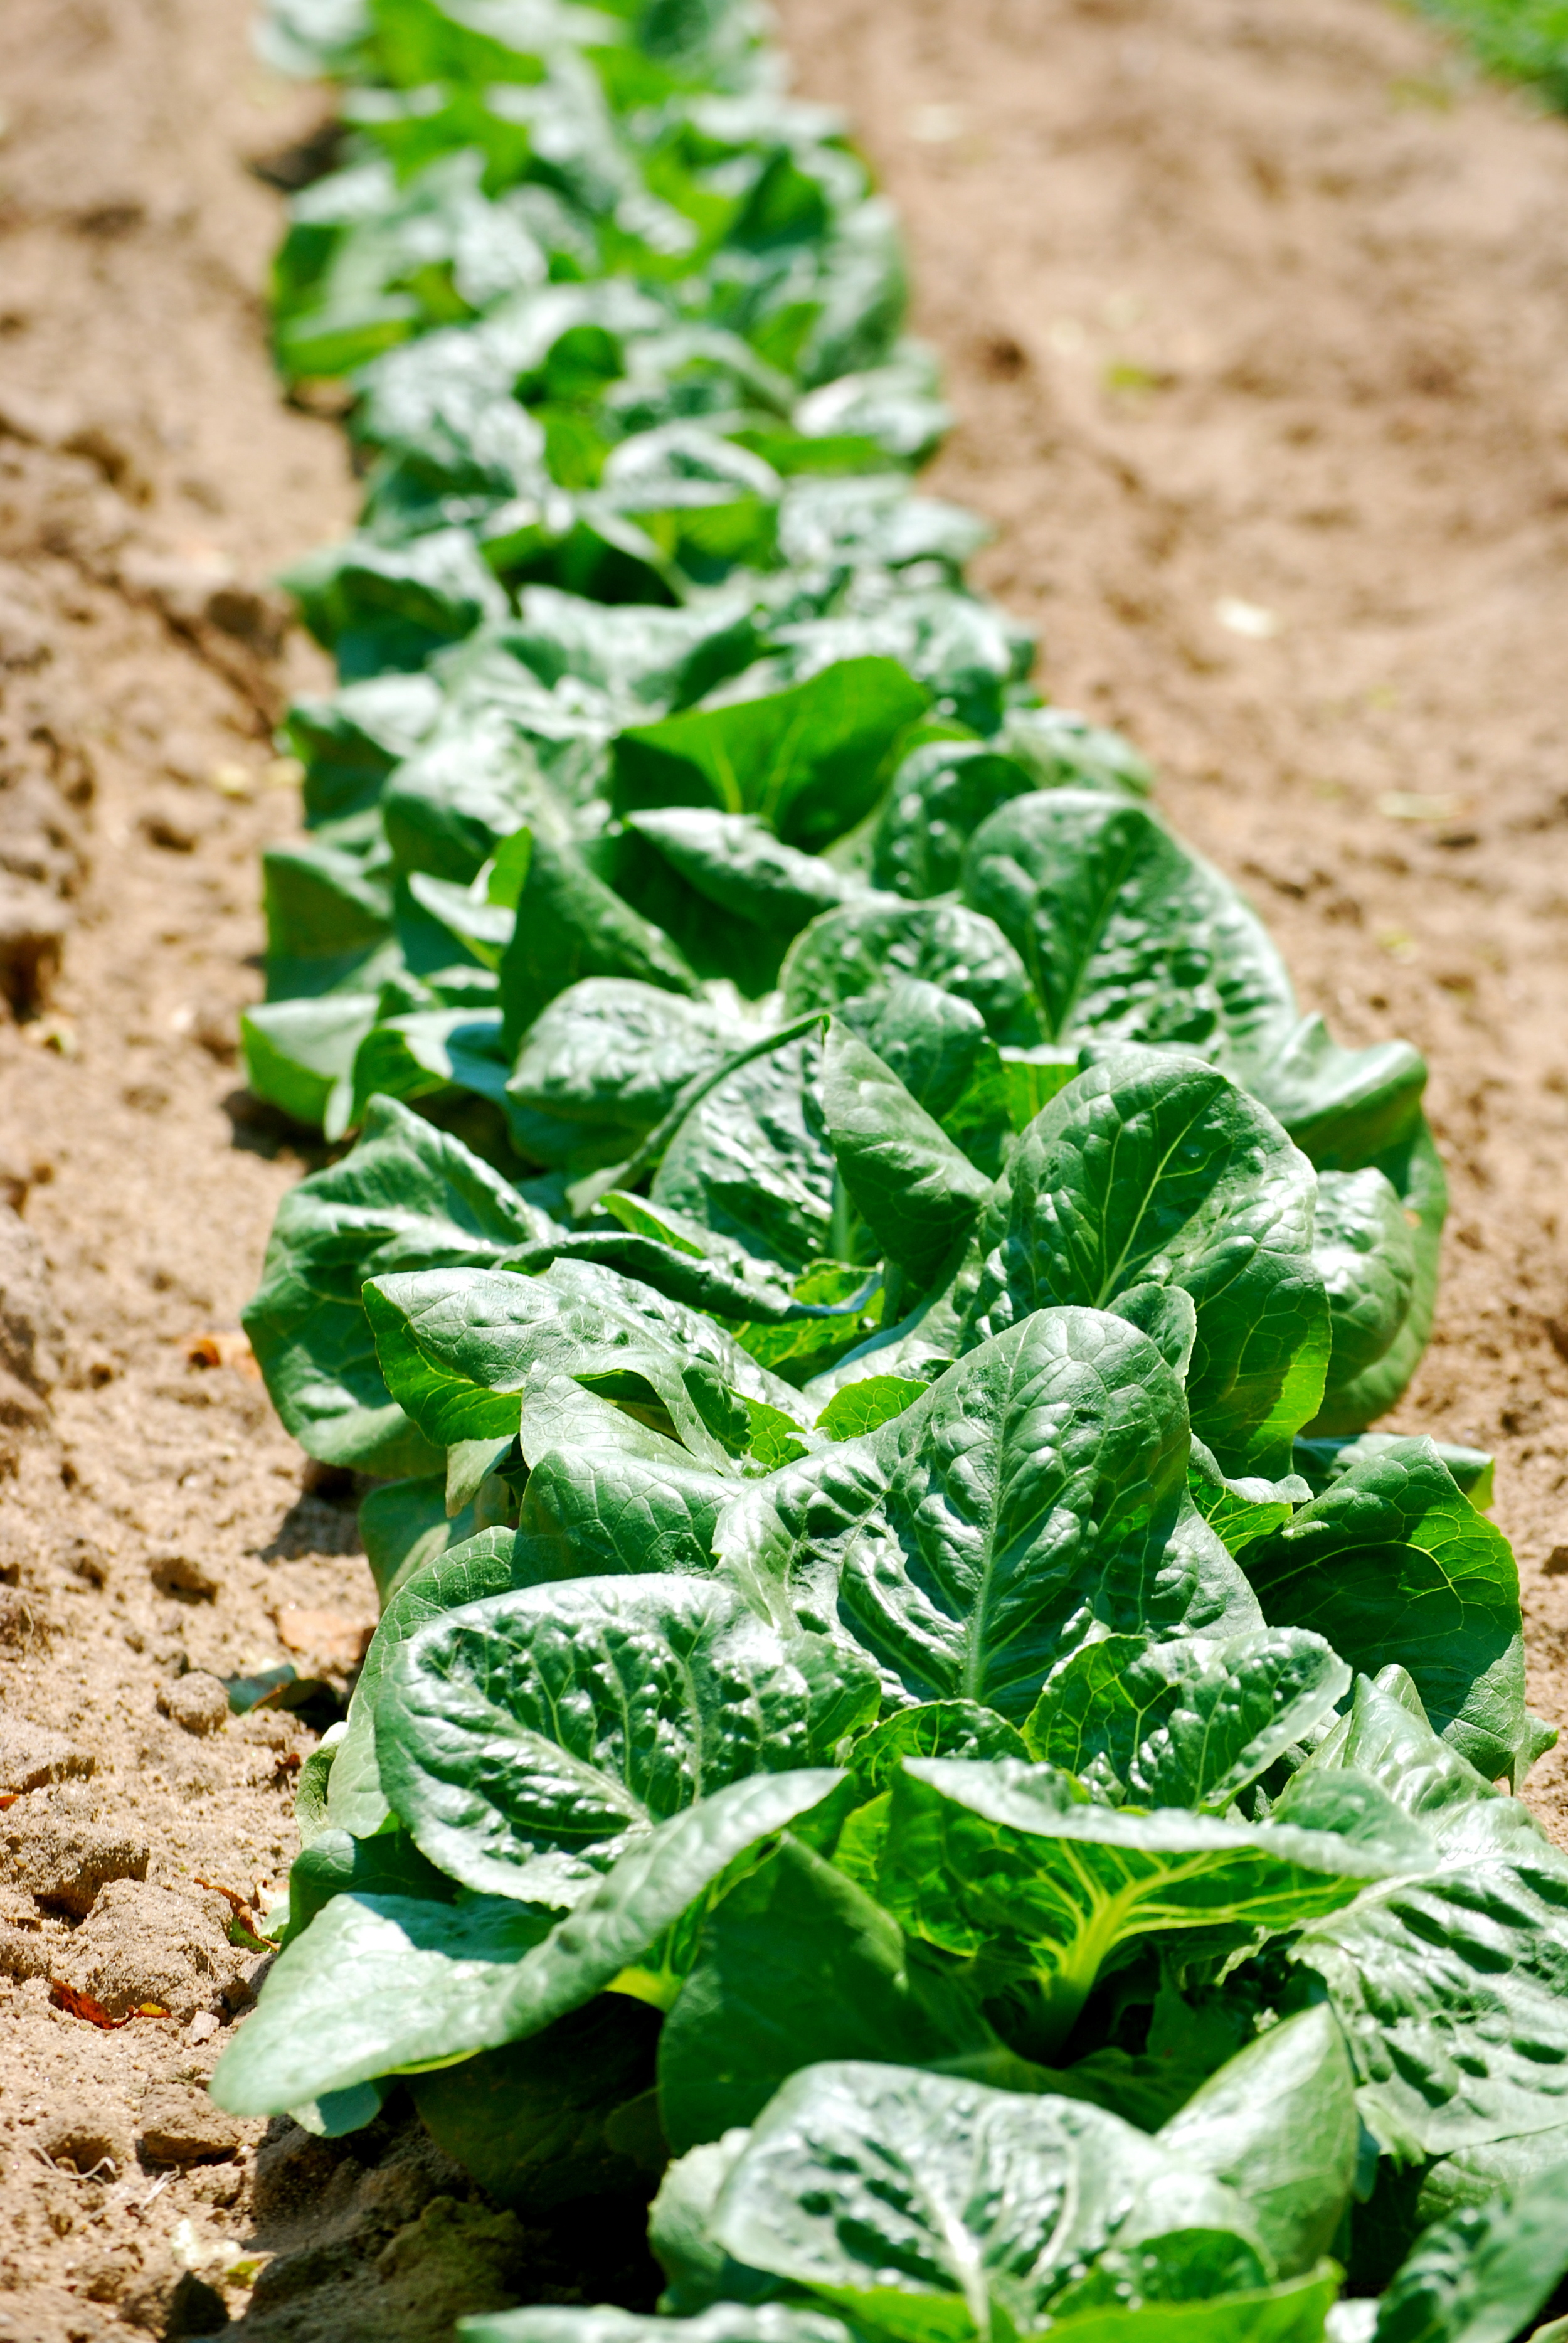 Romaine Lettuce: From Our Farm - Hearty and Crisp